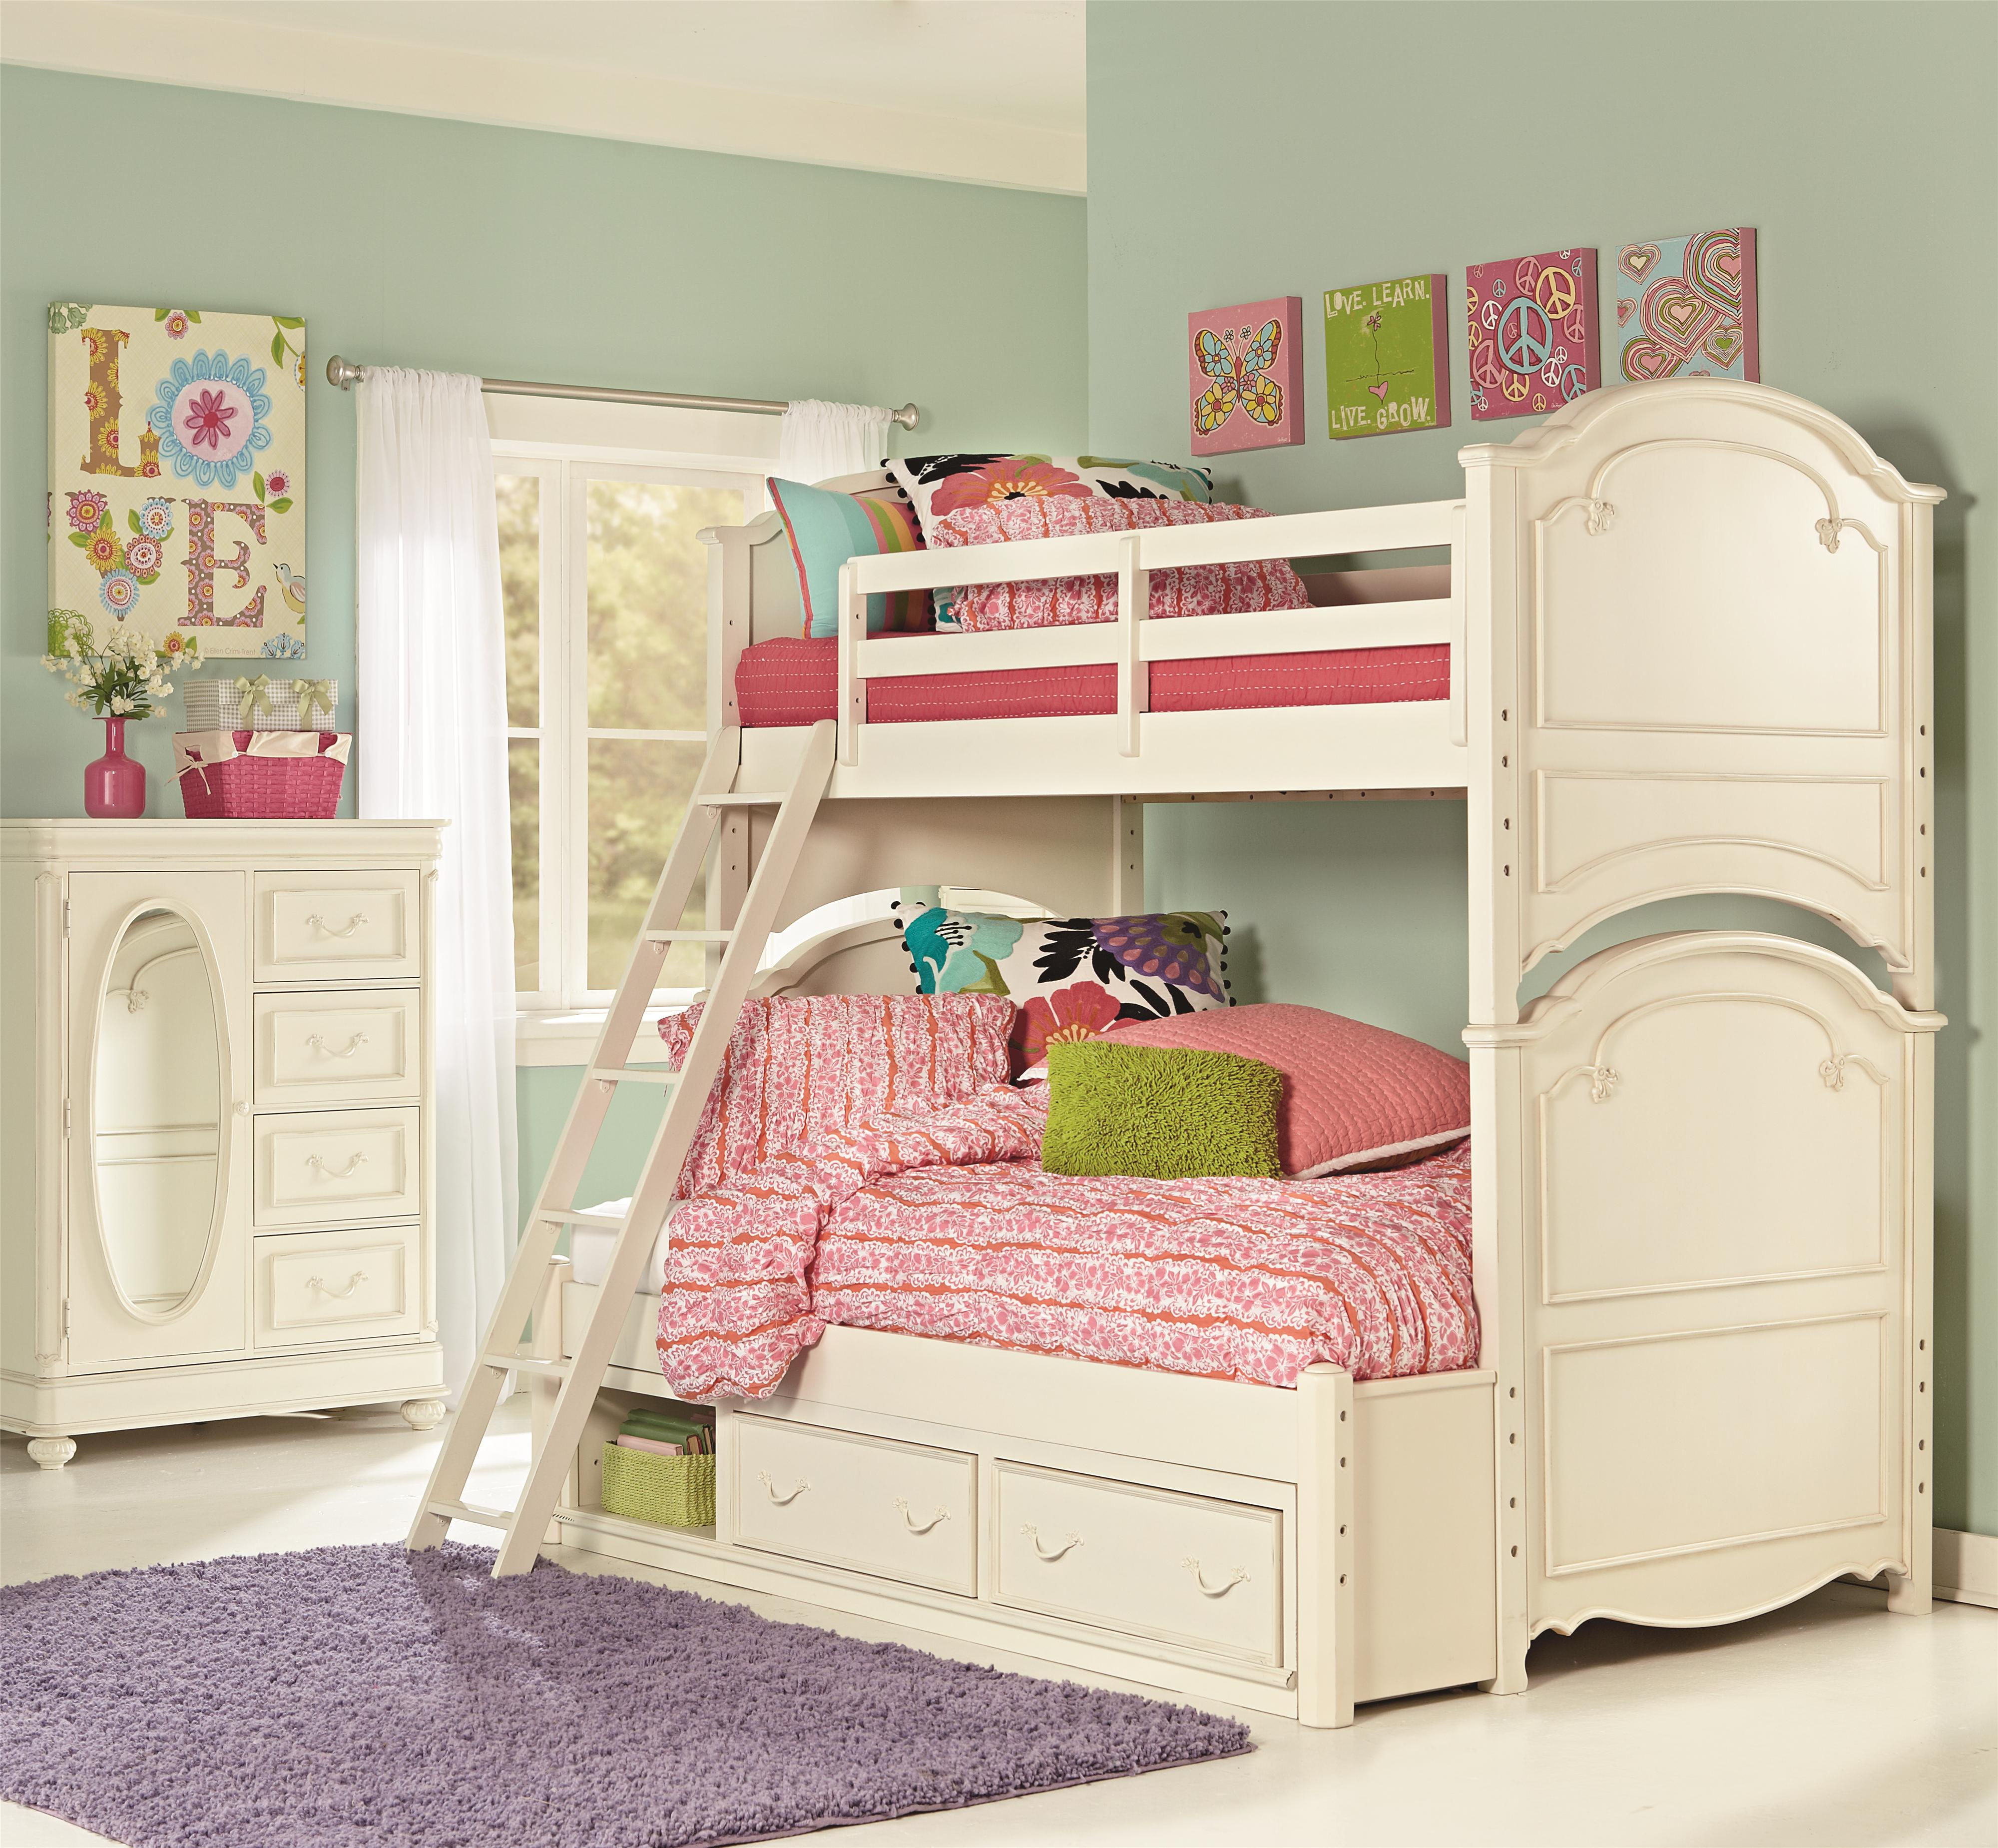 Legacy Classic Kids Charlotte Full Bedroom Group - Item Number: 3850 F Bedroom Group 1